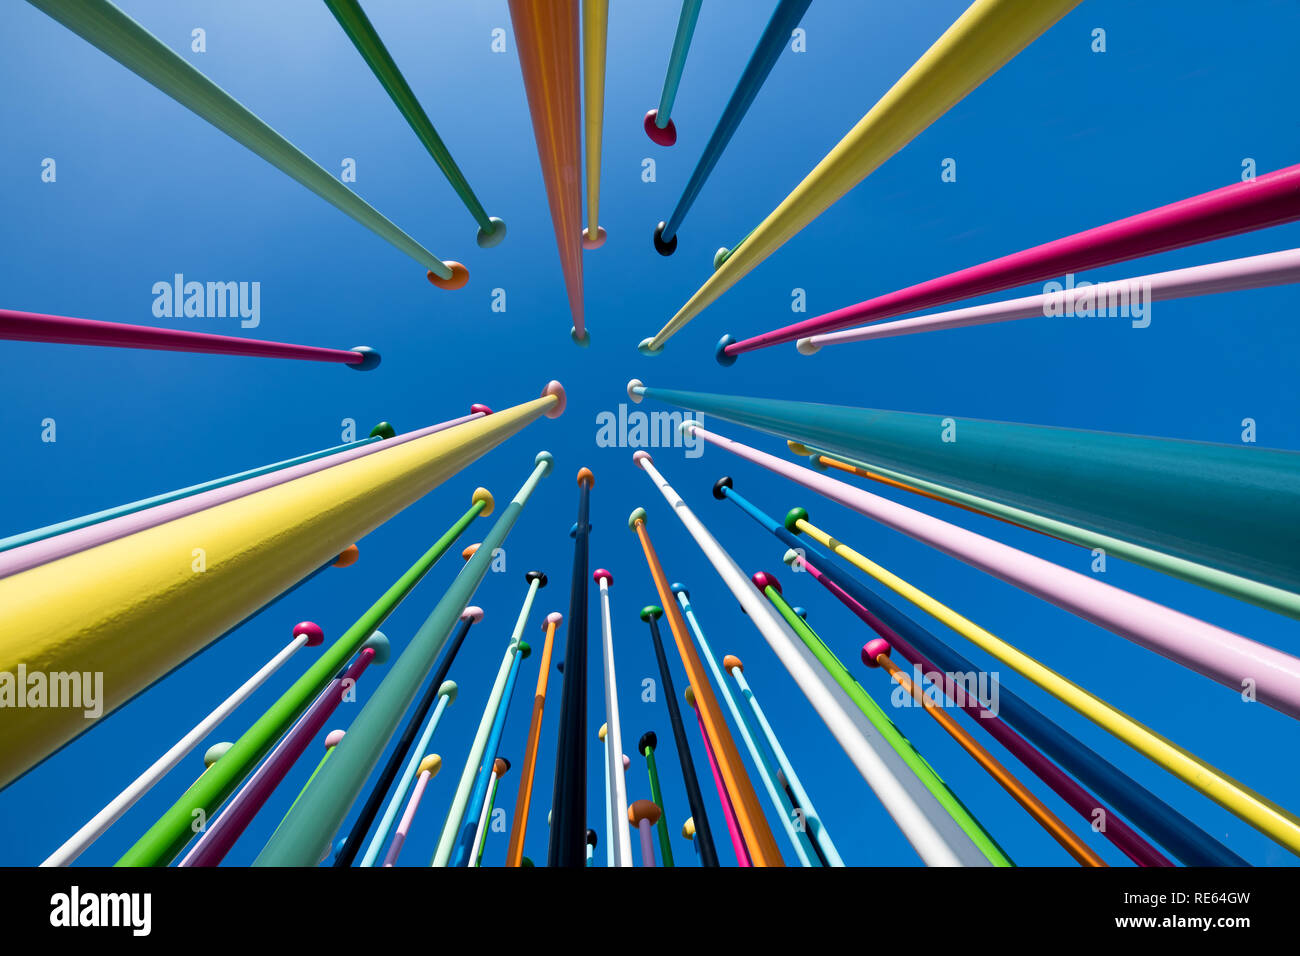 Low perspective view of the Coloris artwork, Milan by in the City Life district by Pascale Marthine Tayou against a clear blue sky - Stock Image